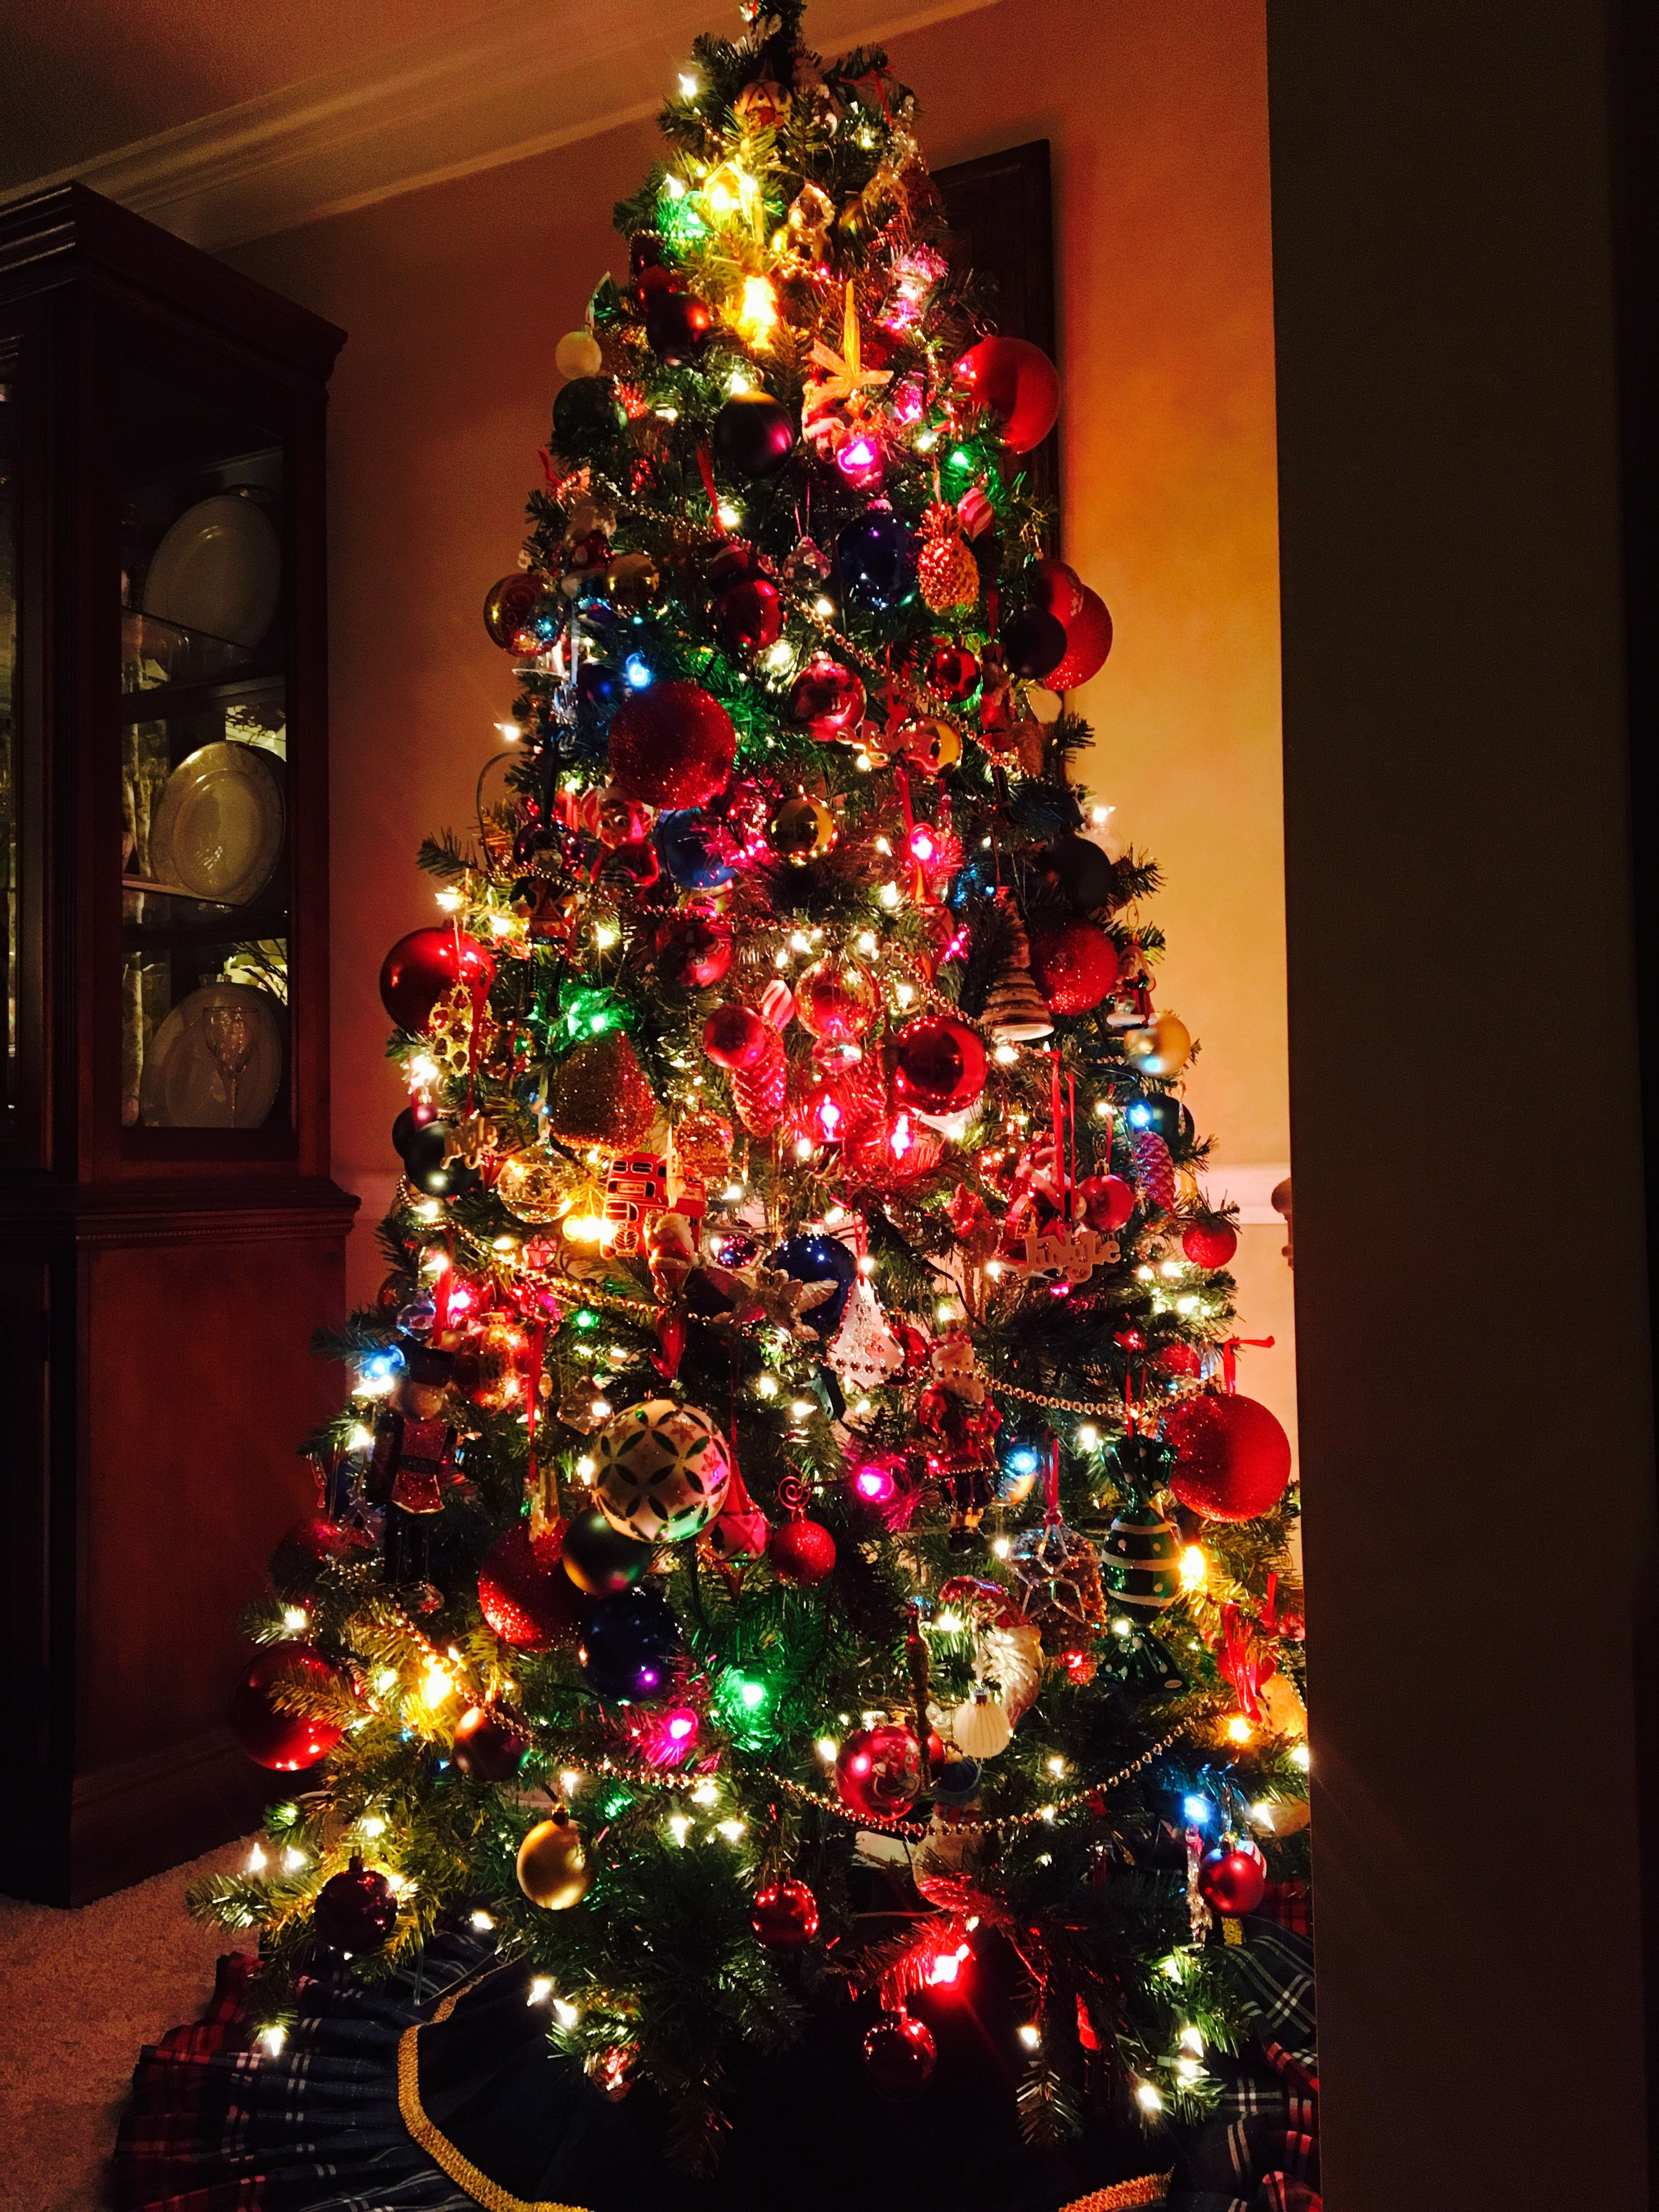 Christmas Tree With Multi Color Lights Christmas Tree With Coloured Lights Multi Colored Christmas Lights Decorating With Christmas Lights